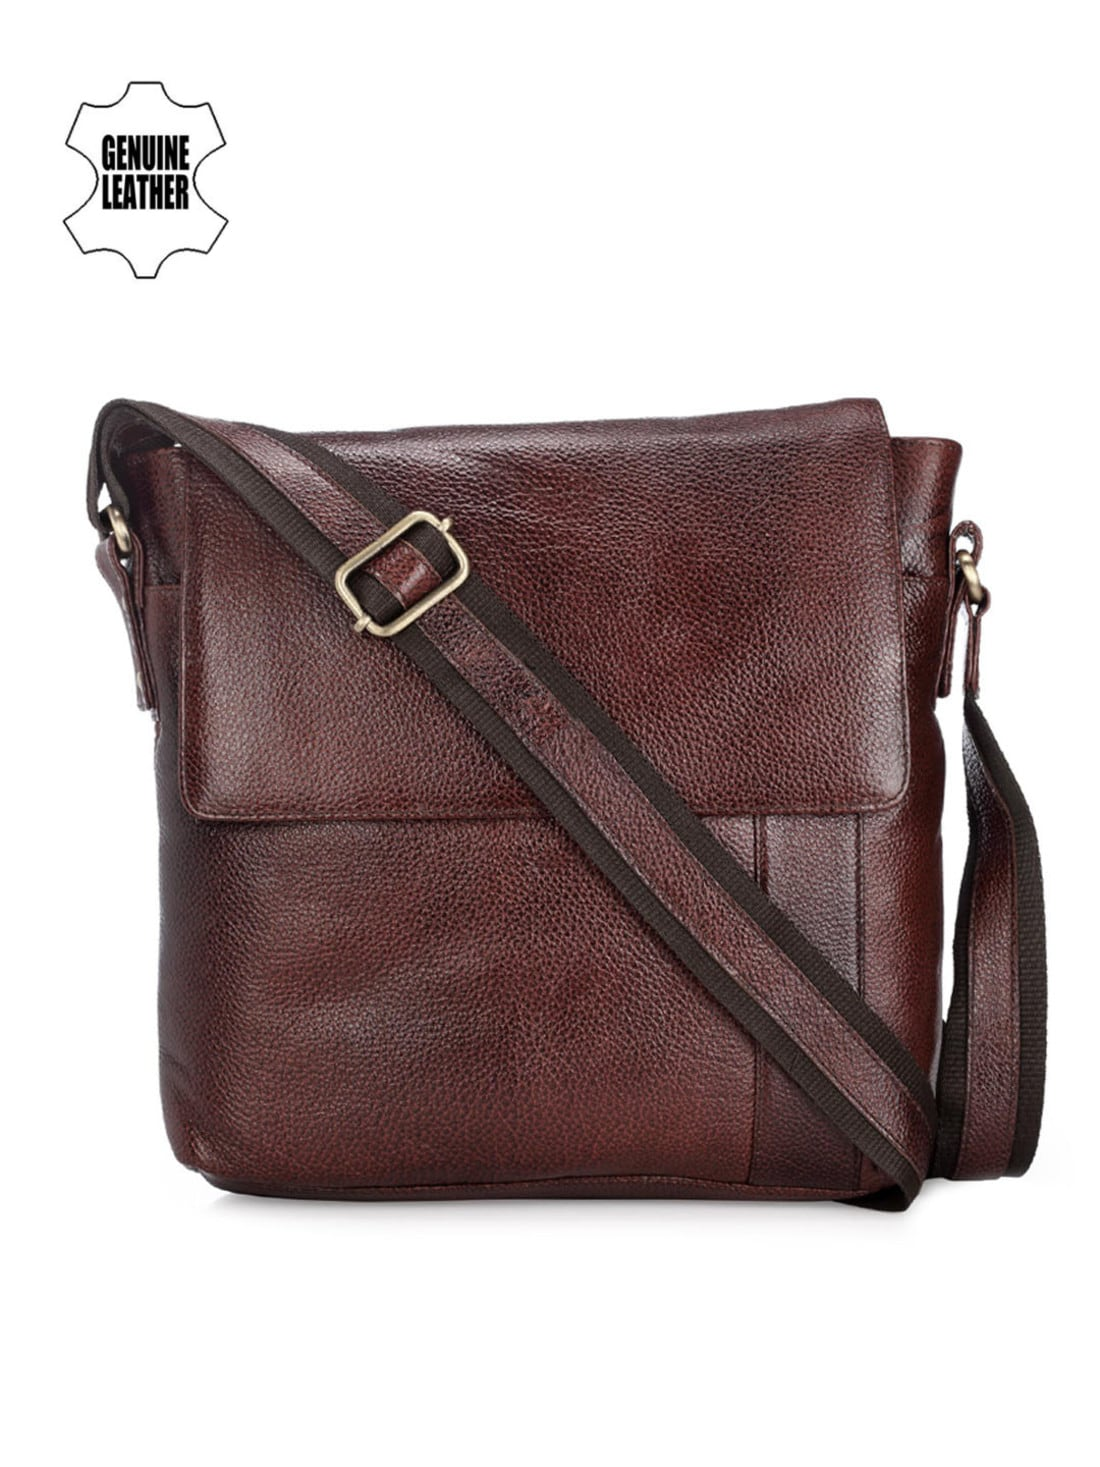 5ab83b656510 Messenger Bags - Buy Messenger Bags Online in India